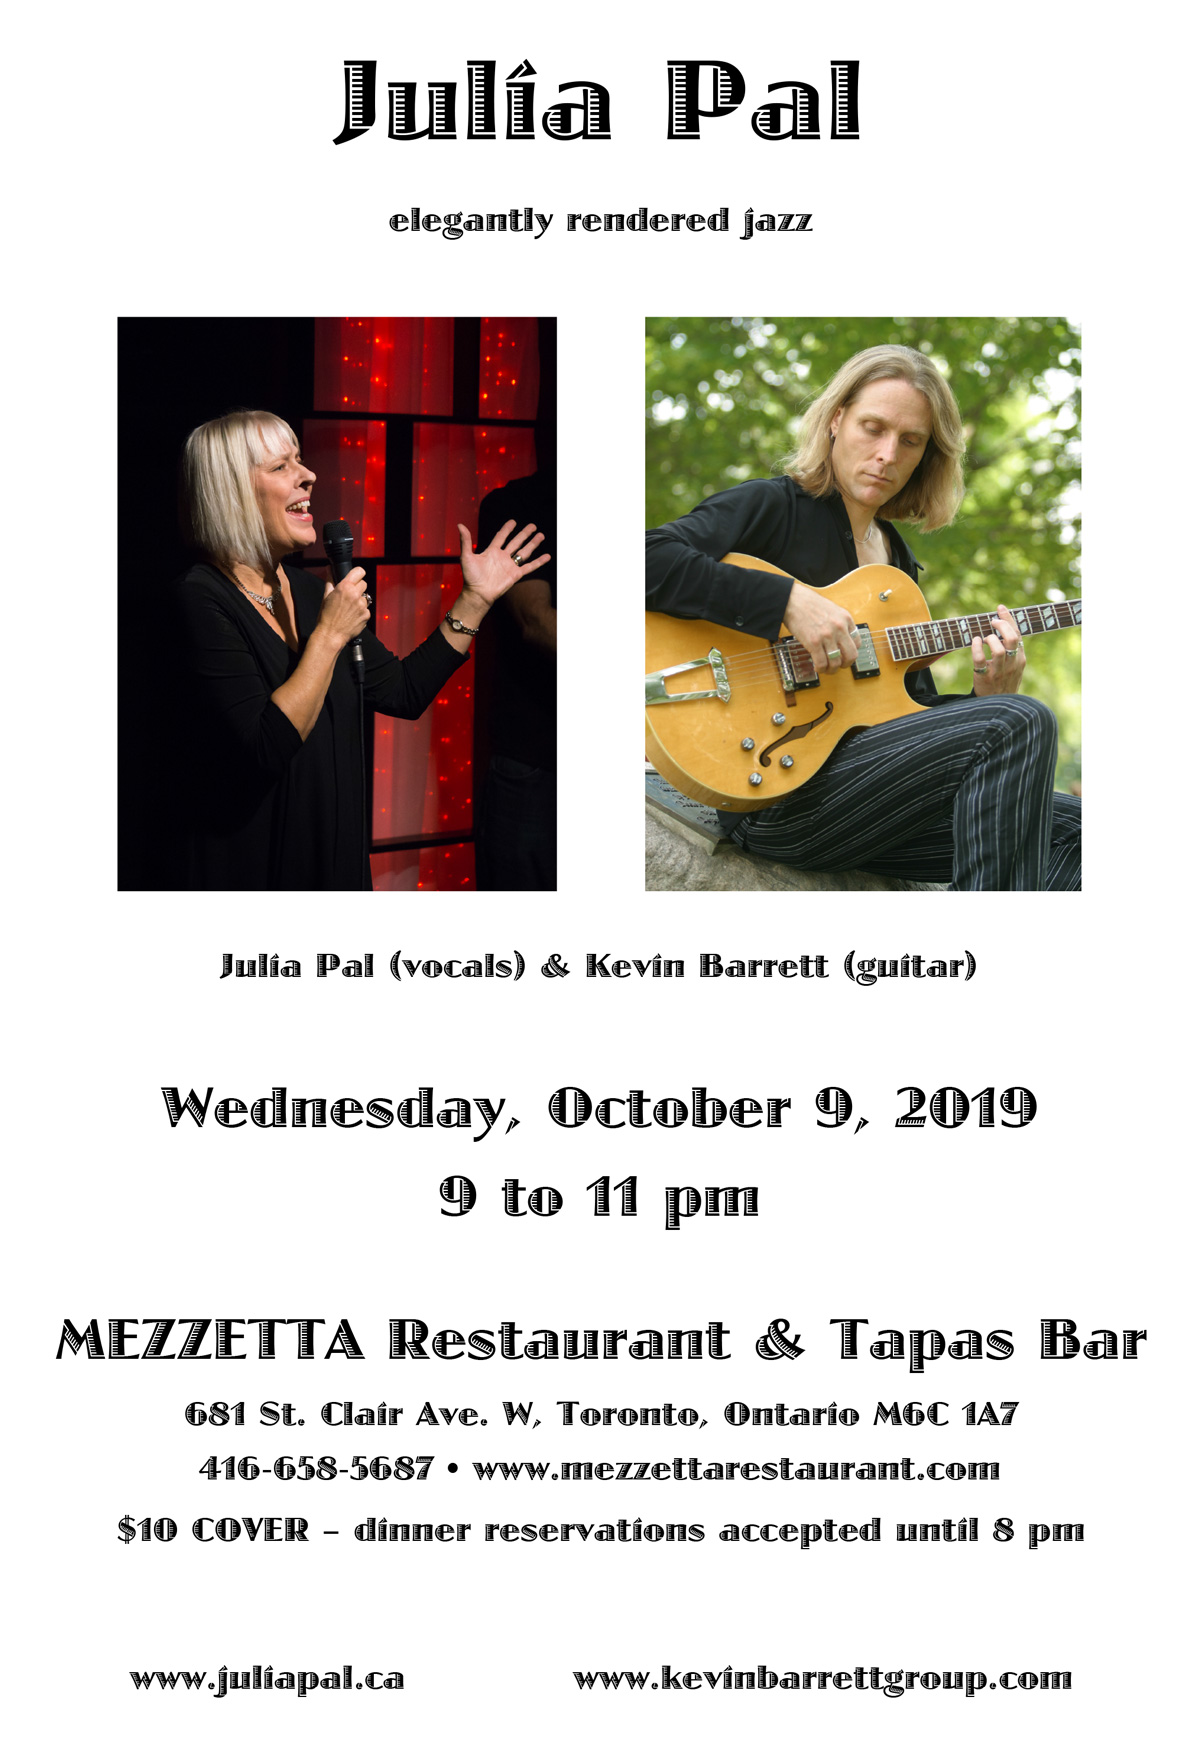 Julia Pal - Oct. 9, 2019 Mezzetta's